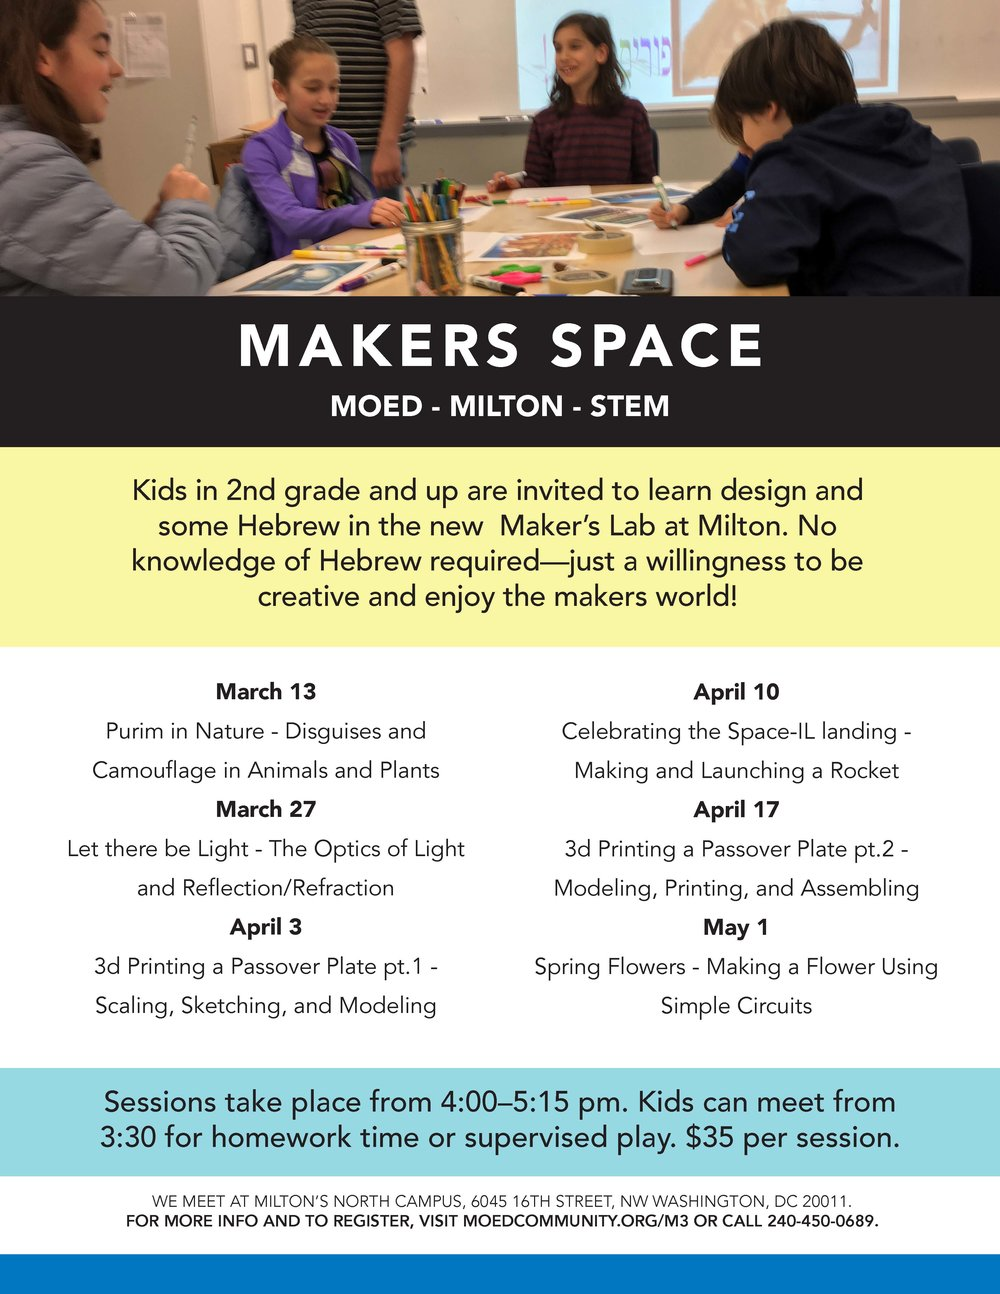 Makers-Space-Session 2.jpg